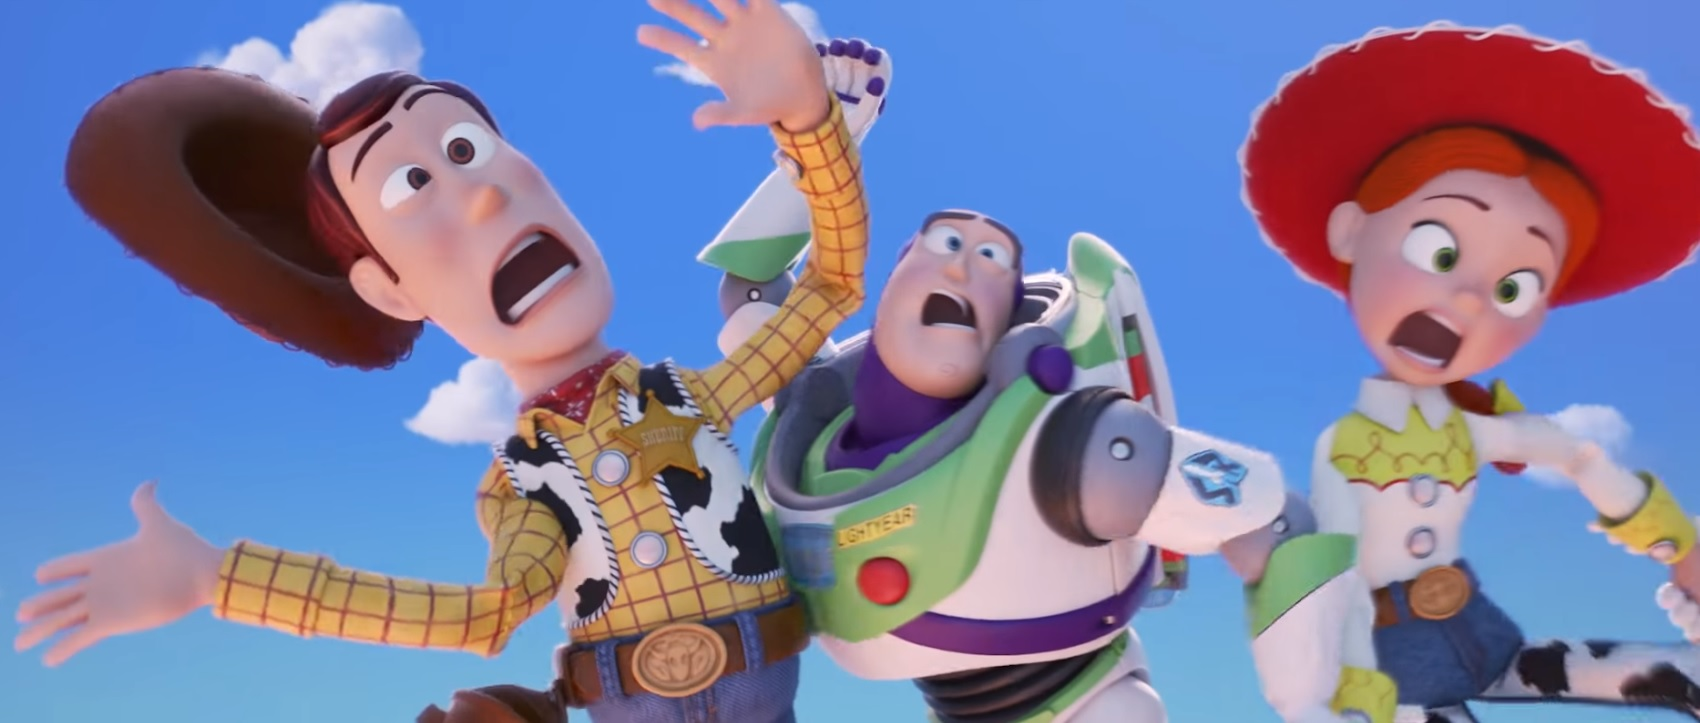 Tom Hanks, Tim Allen reveal 'Toy Story 4' scenes which made them emotional